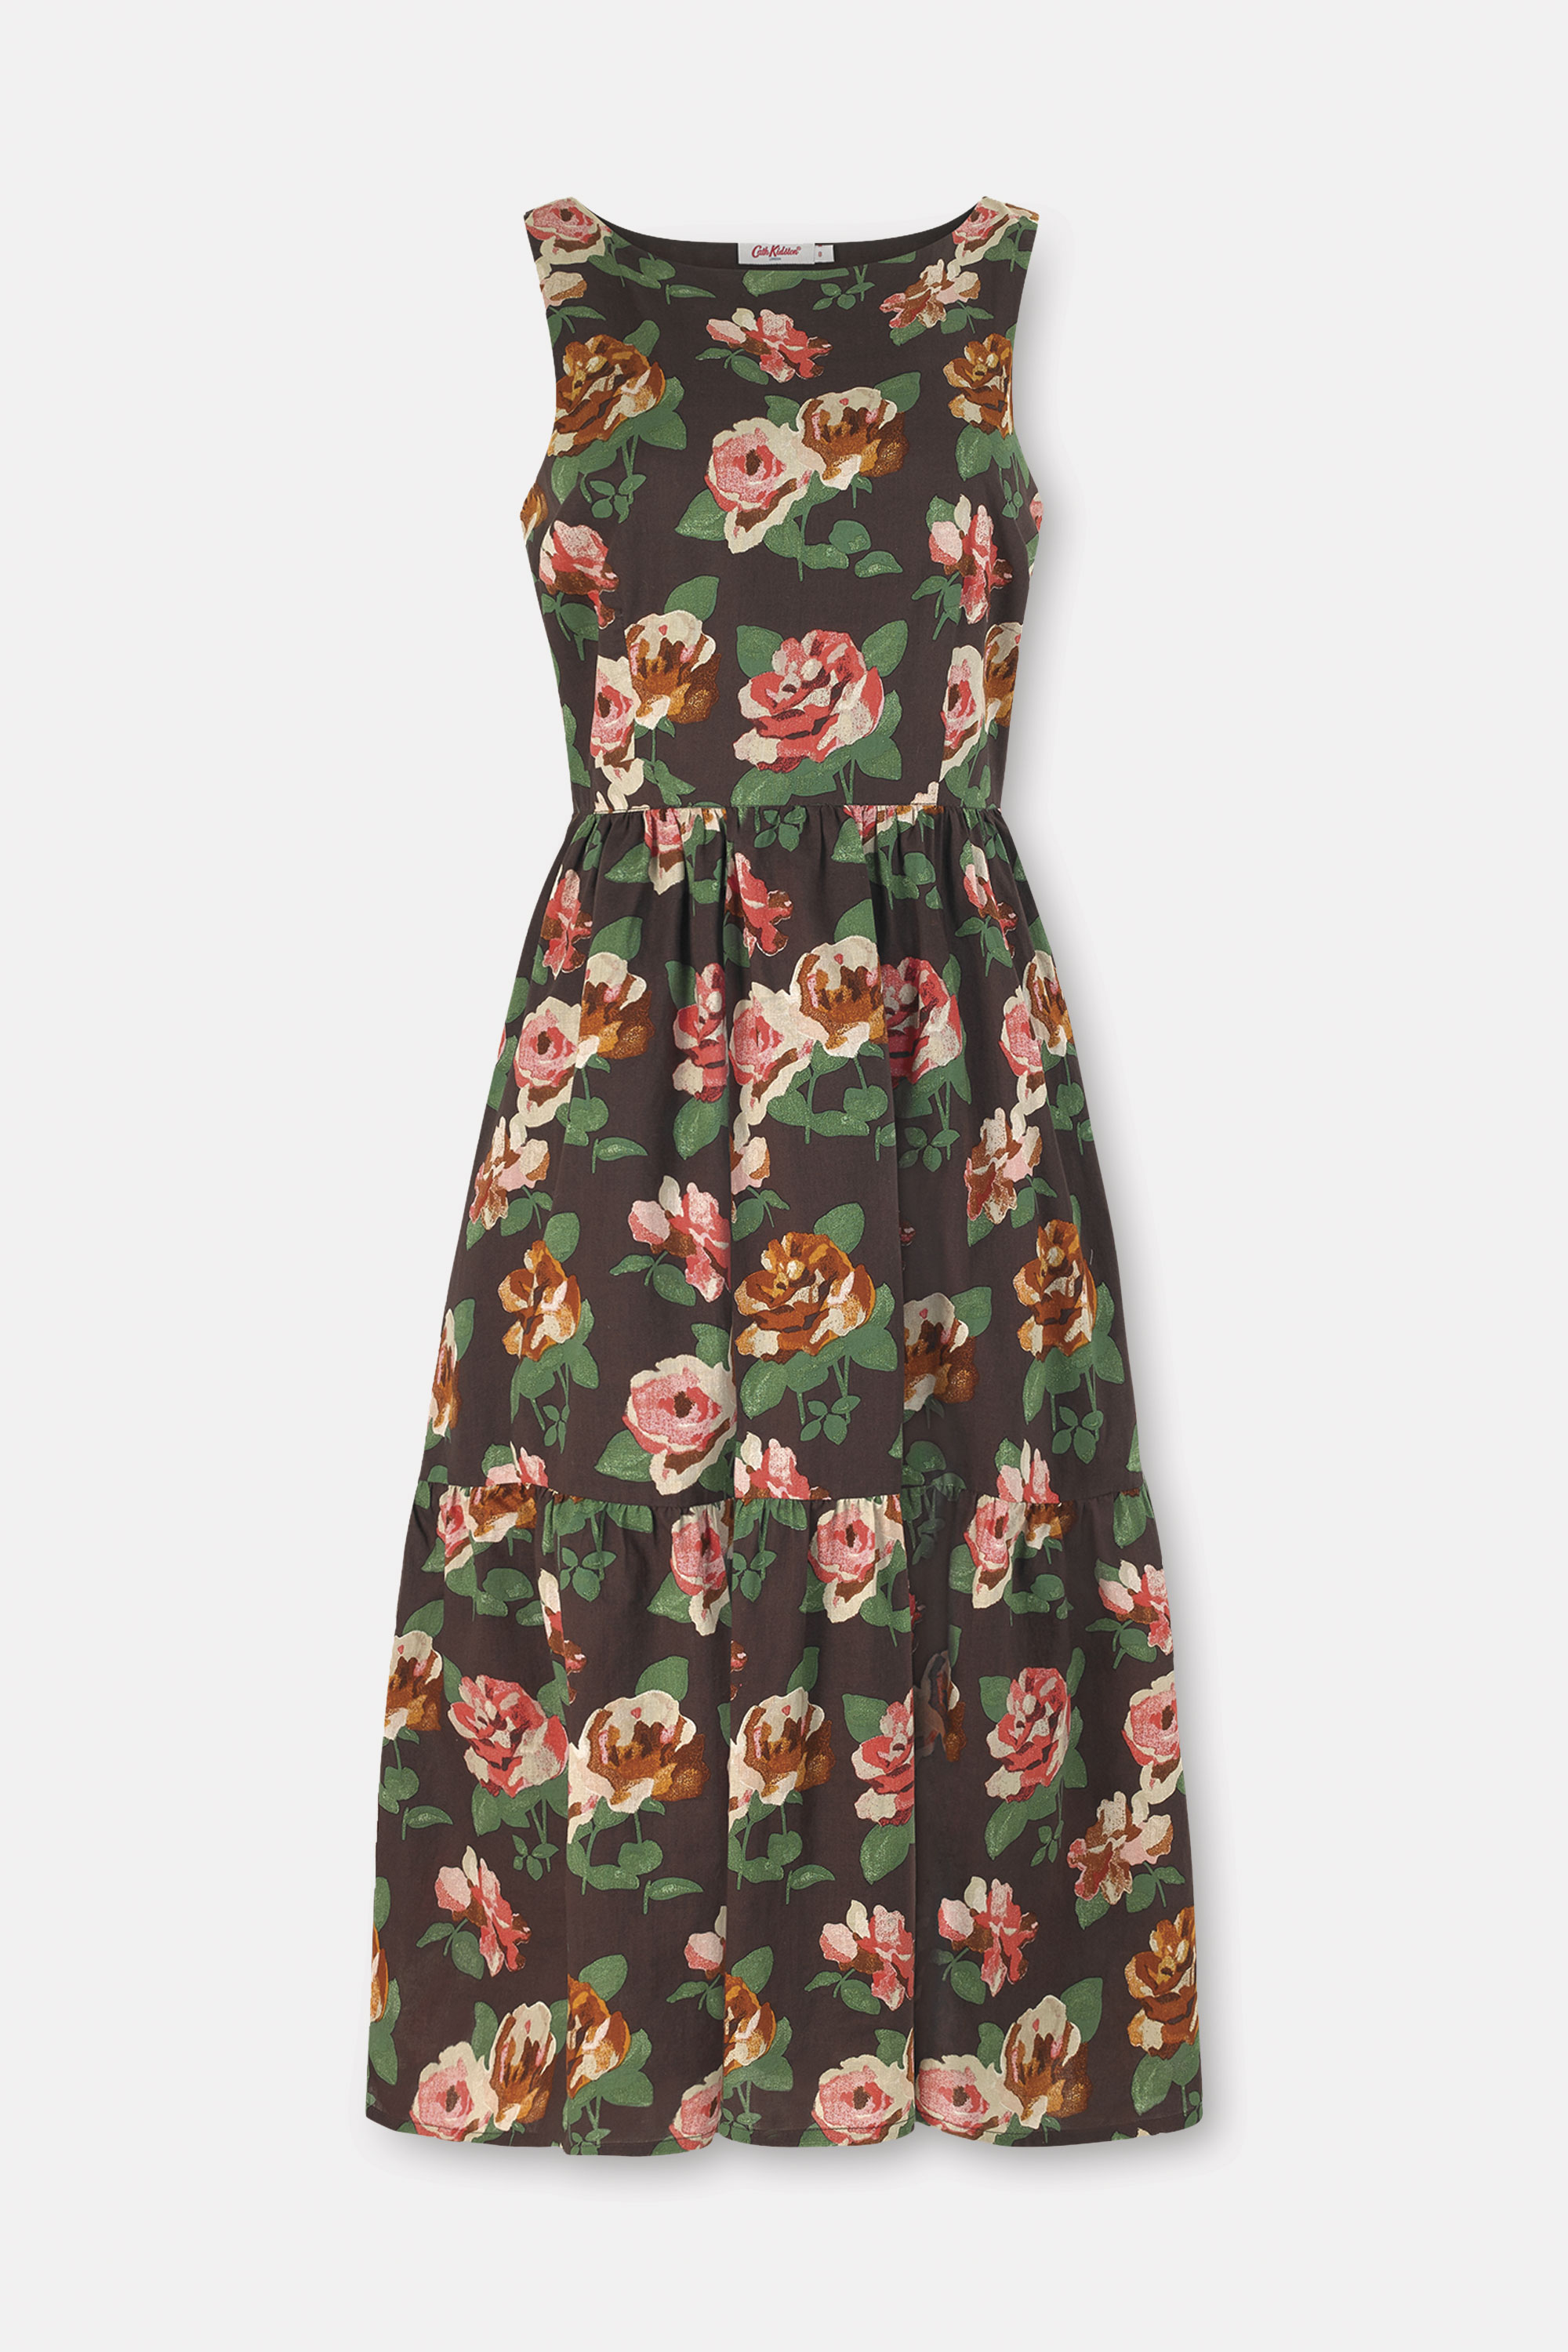 Cath Kidston Chiswick Rose Tiered Hem Cotton Dress in Chestnut, 100% Cotton, 8